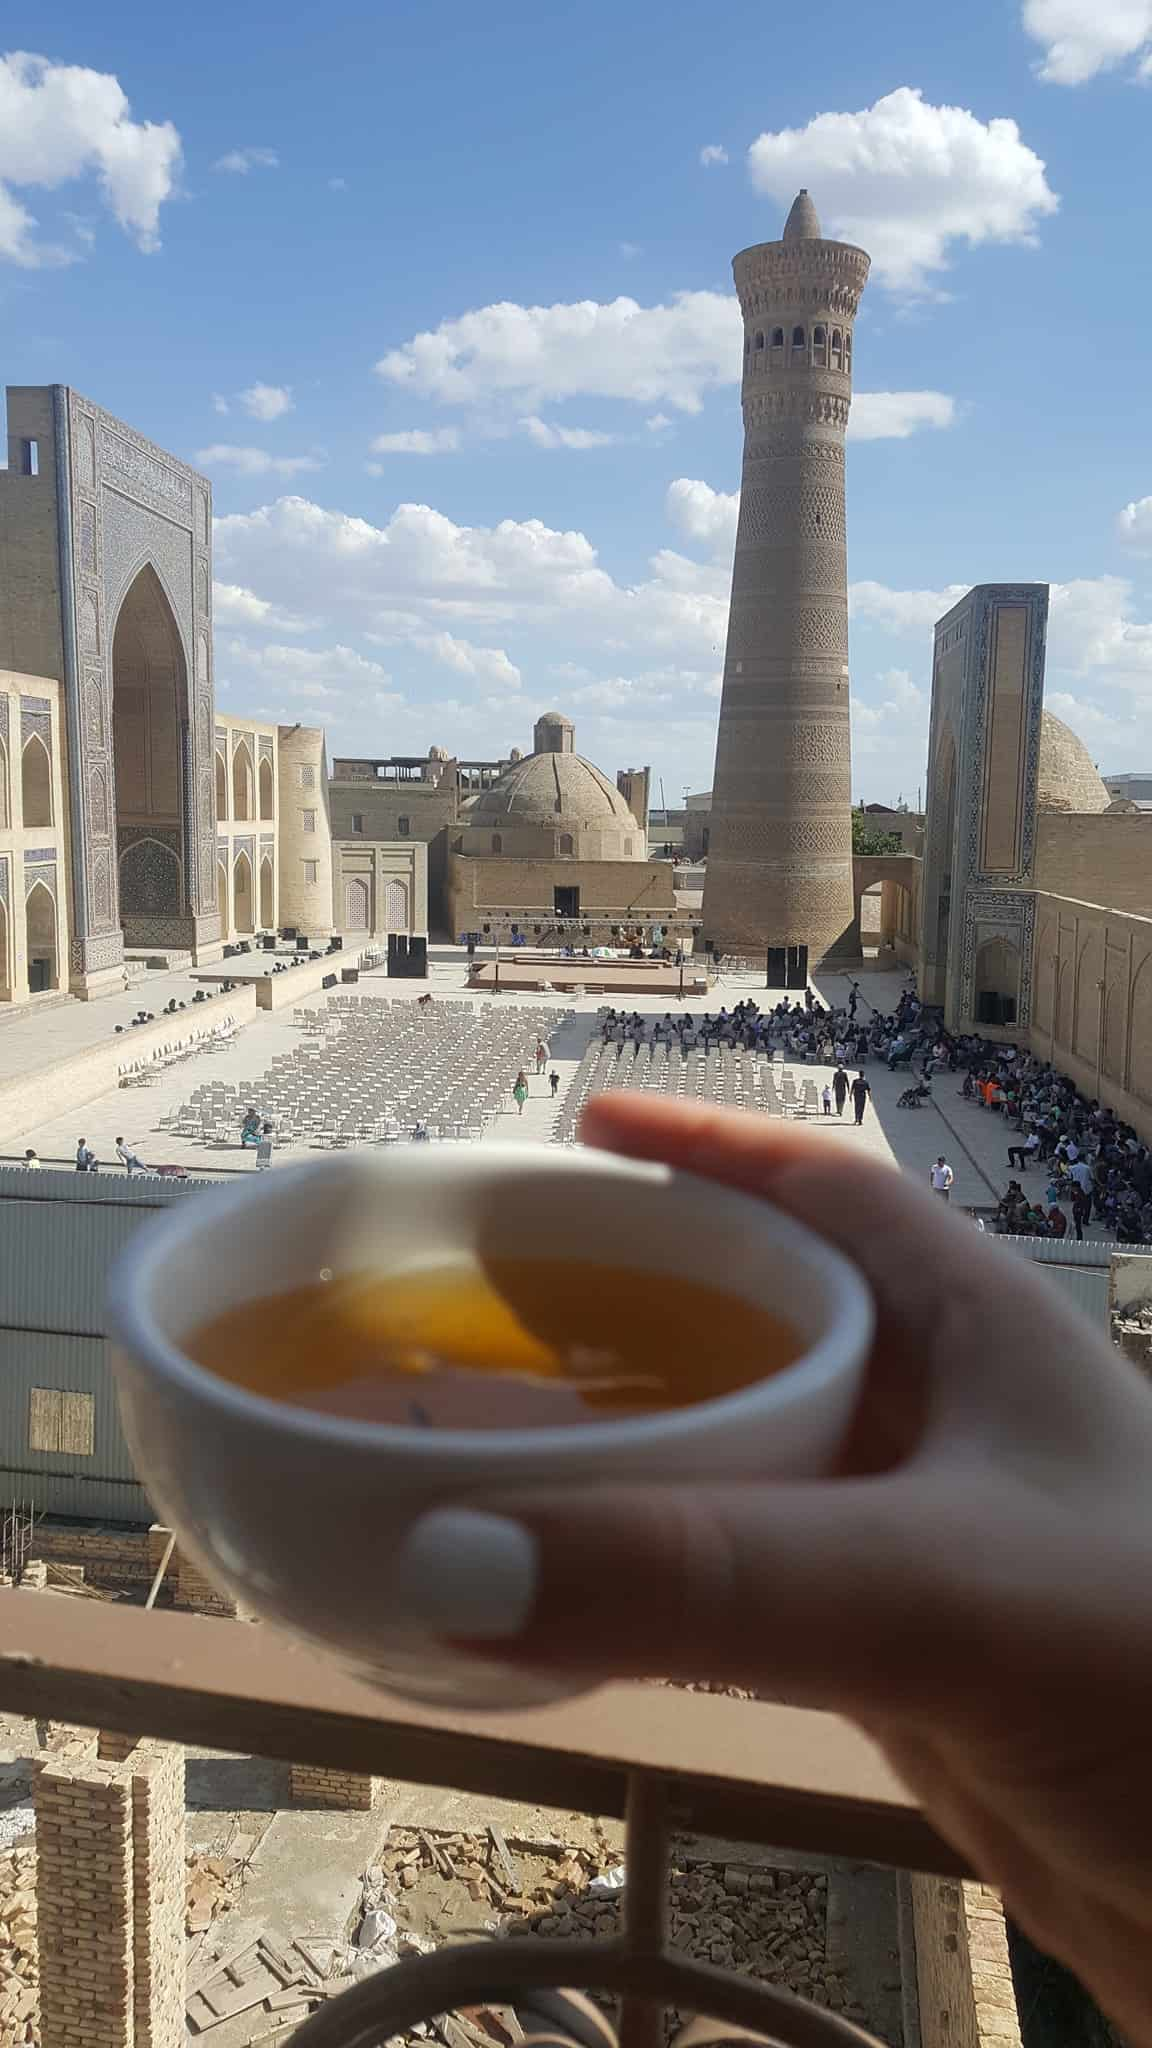 Uzbekistan itinerary: Tea with a view in Bukhara